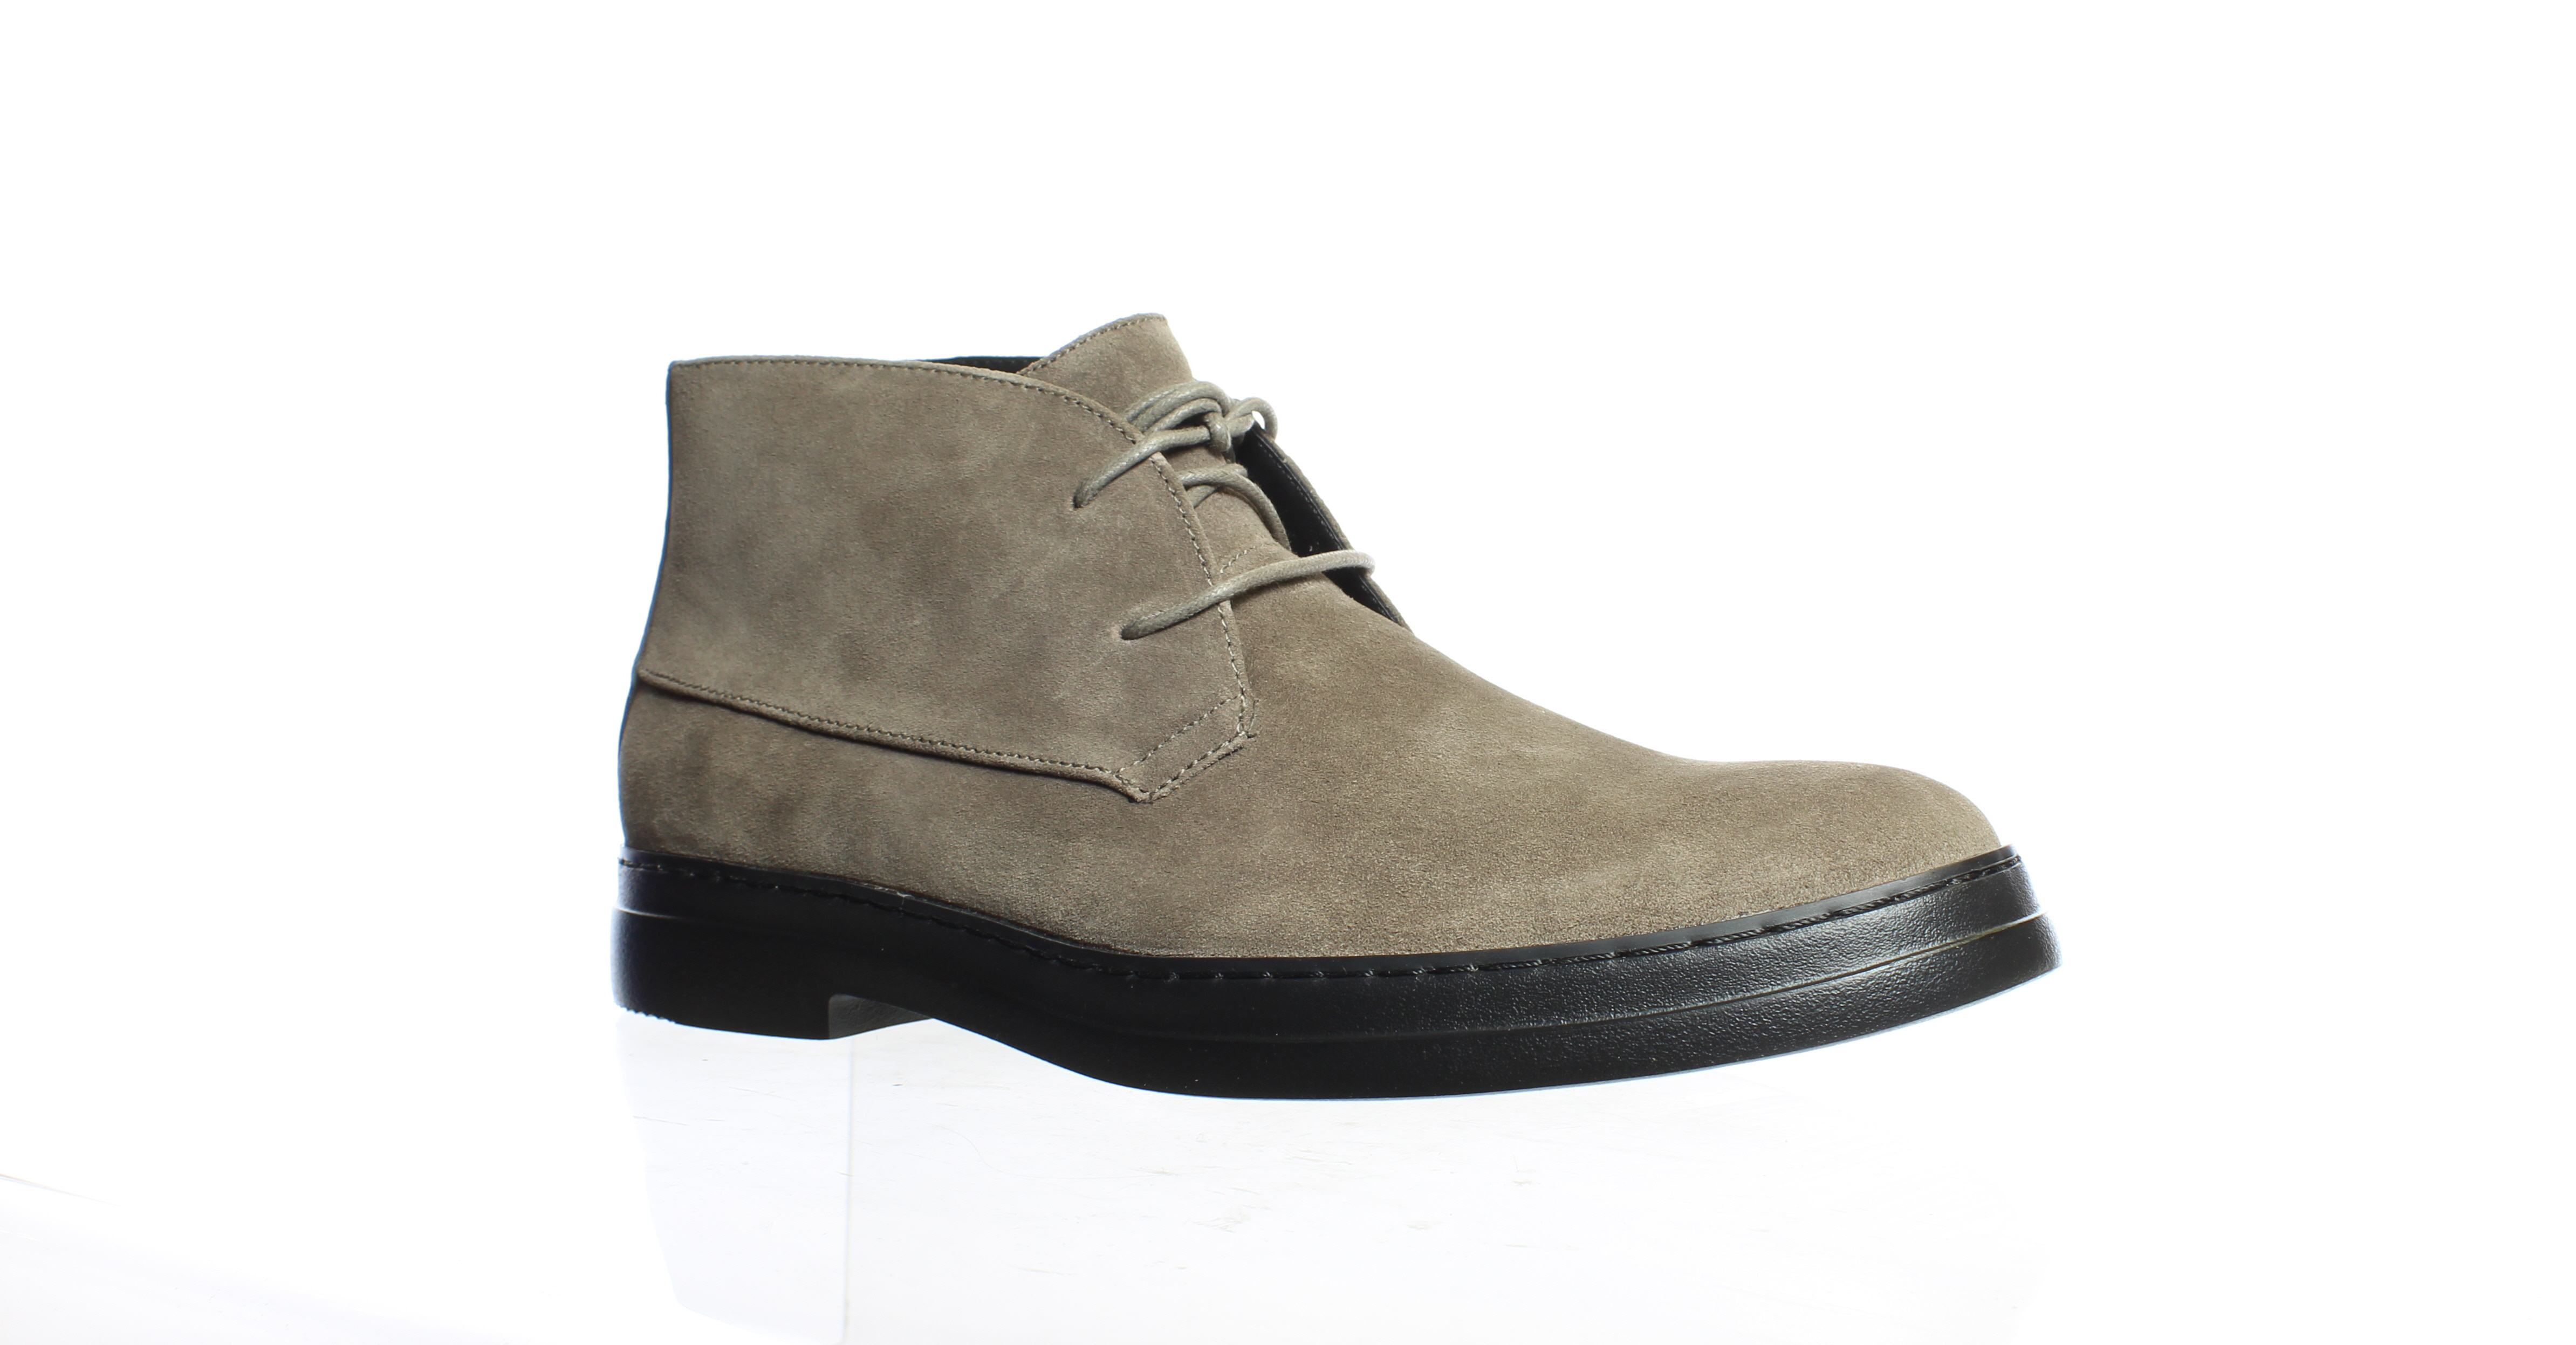 Calvin Klein Mens Rueben Army Fatigue Ankle Boots Size 9.5